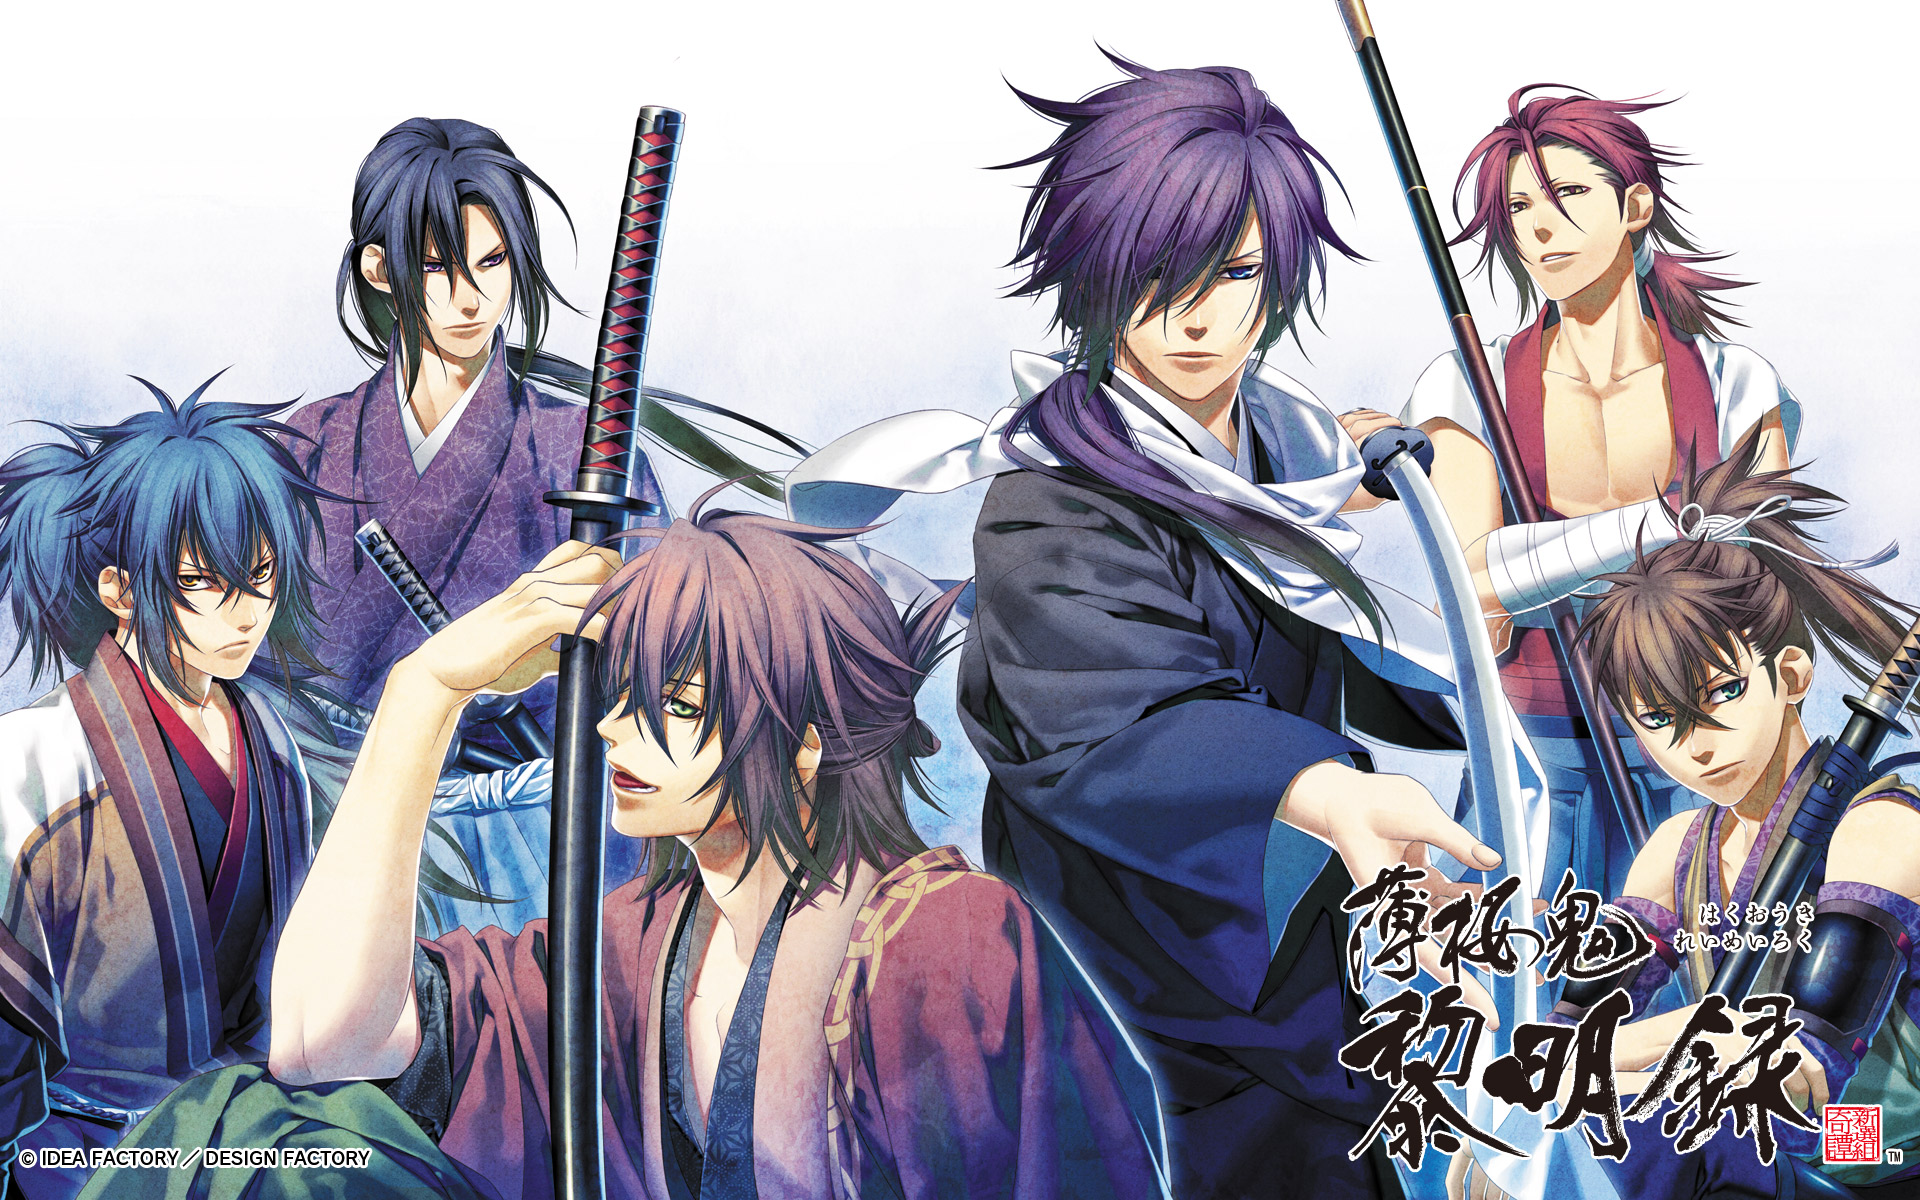 High Resolution Wallpaper | Hakuouki Shinsengumi Kitan 1920x1200 px